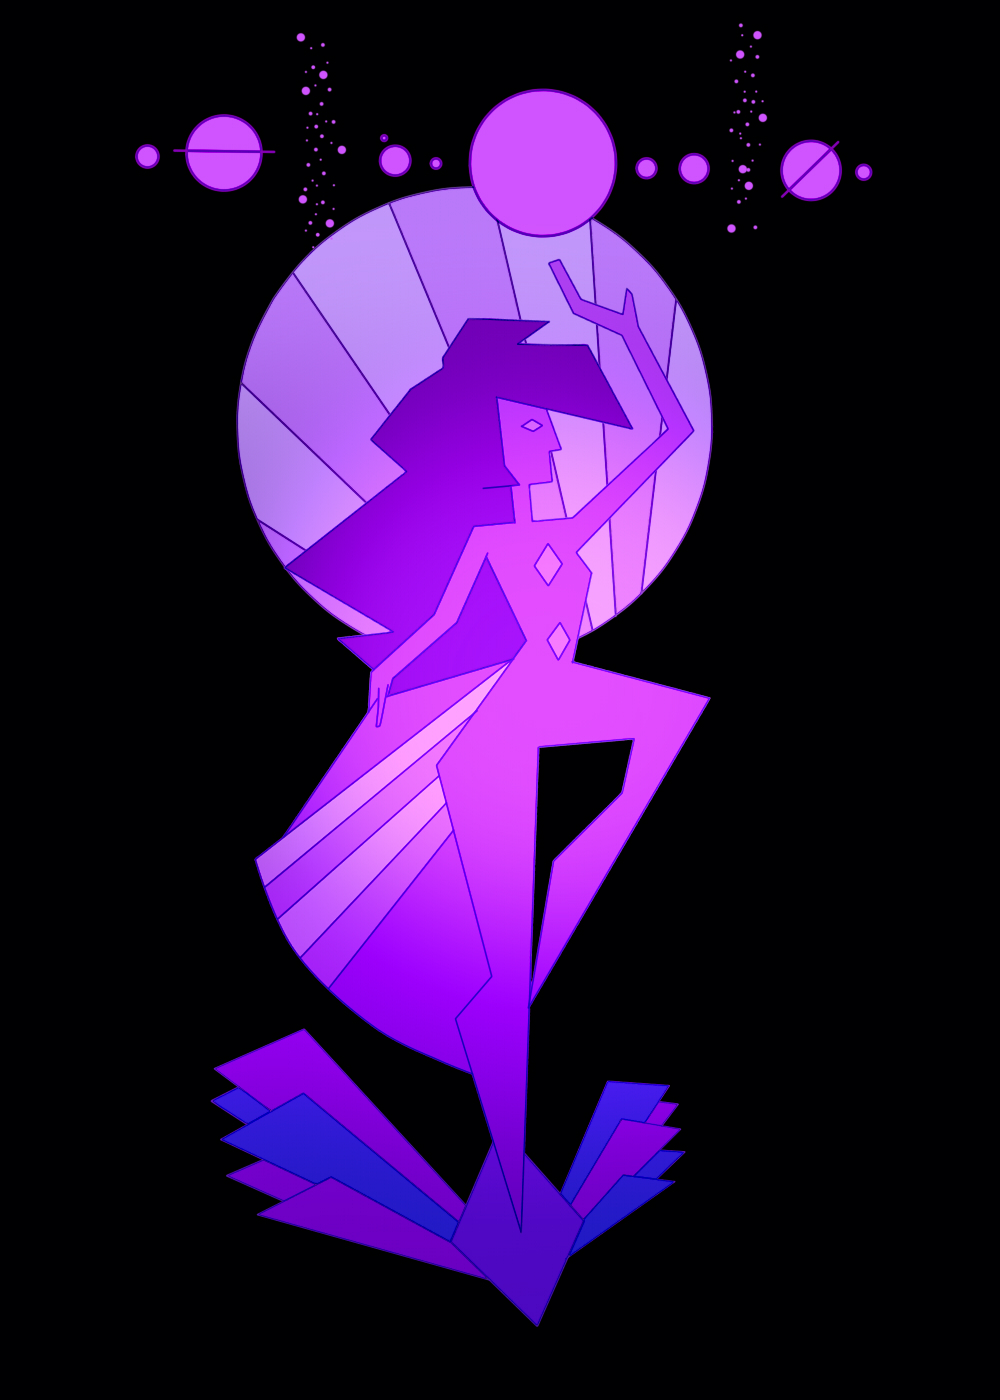 deviantart diamond on art janethepegasus purple by base